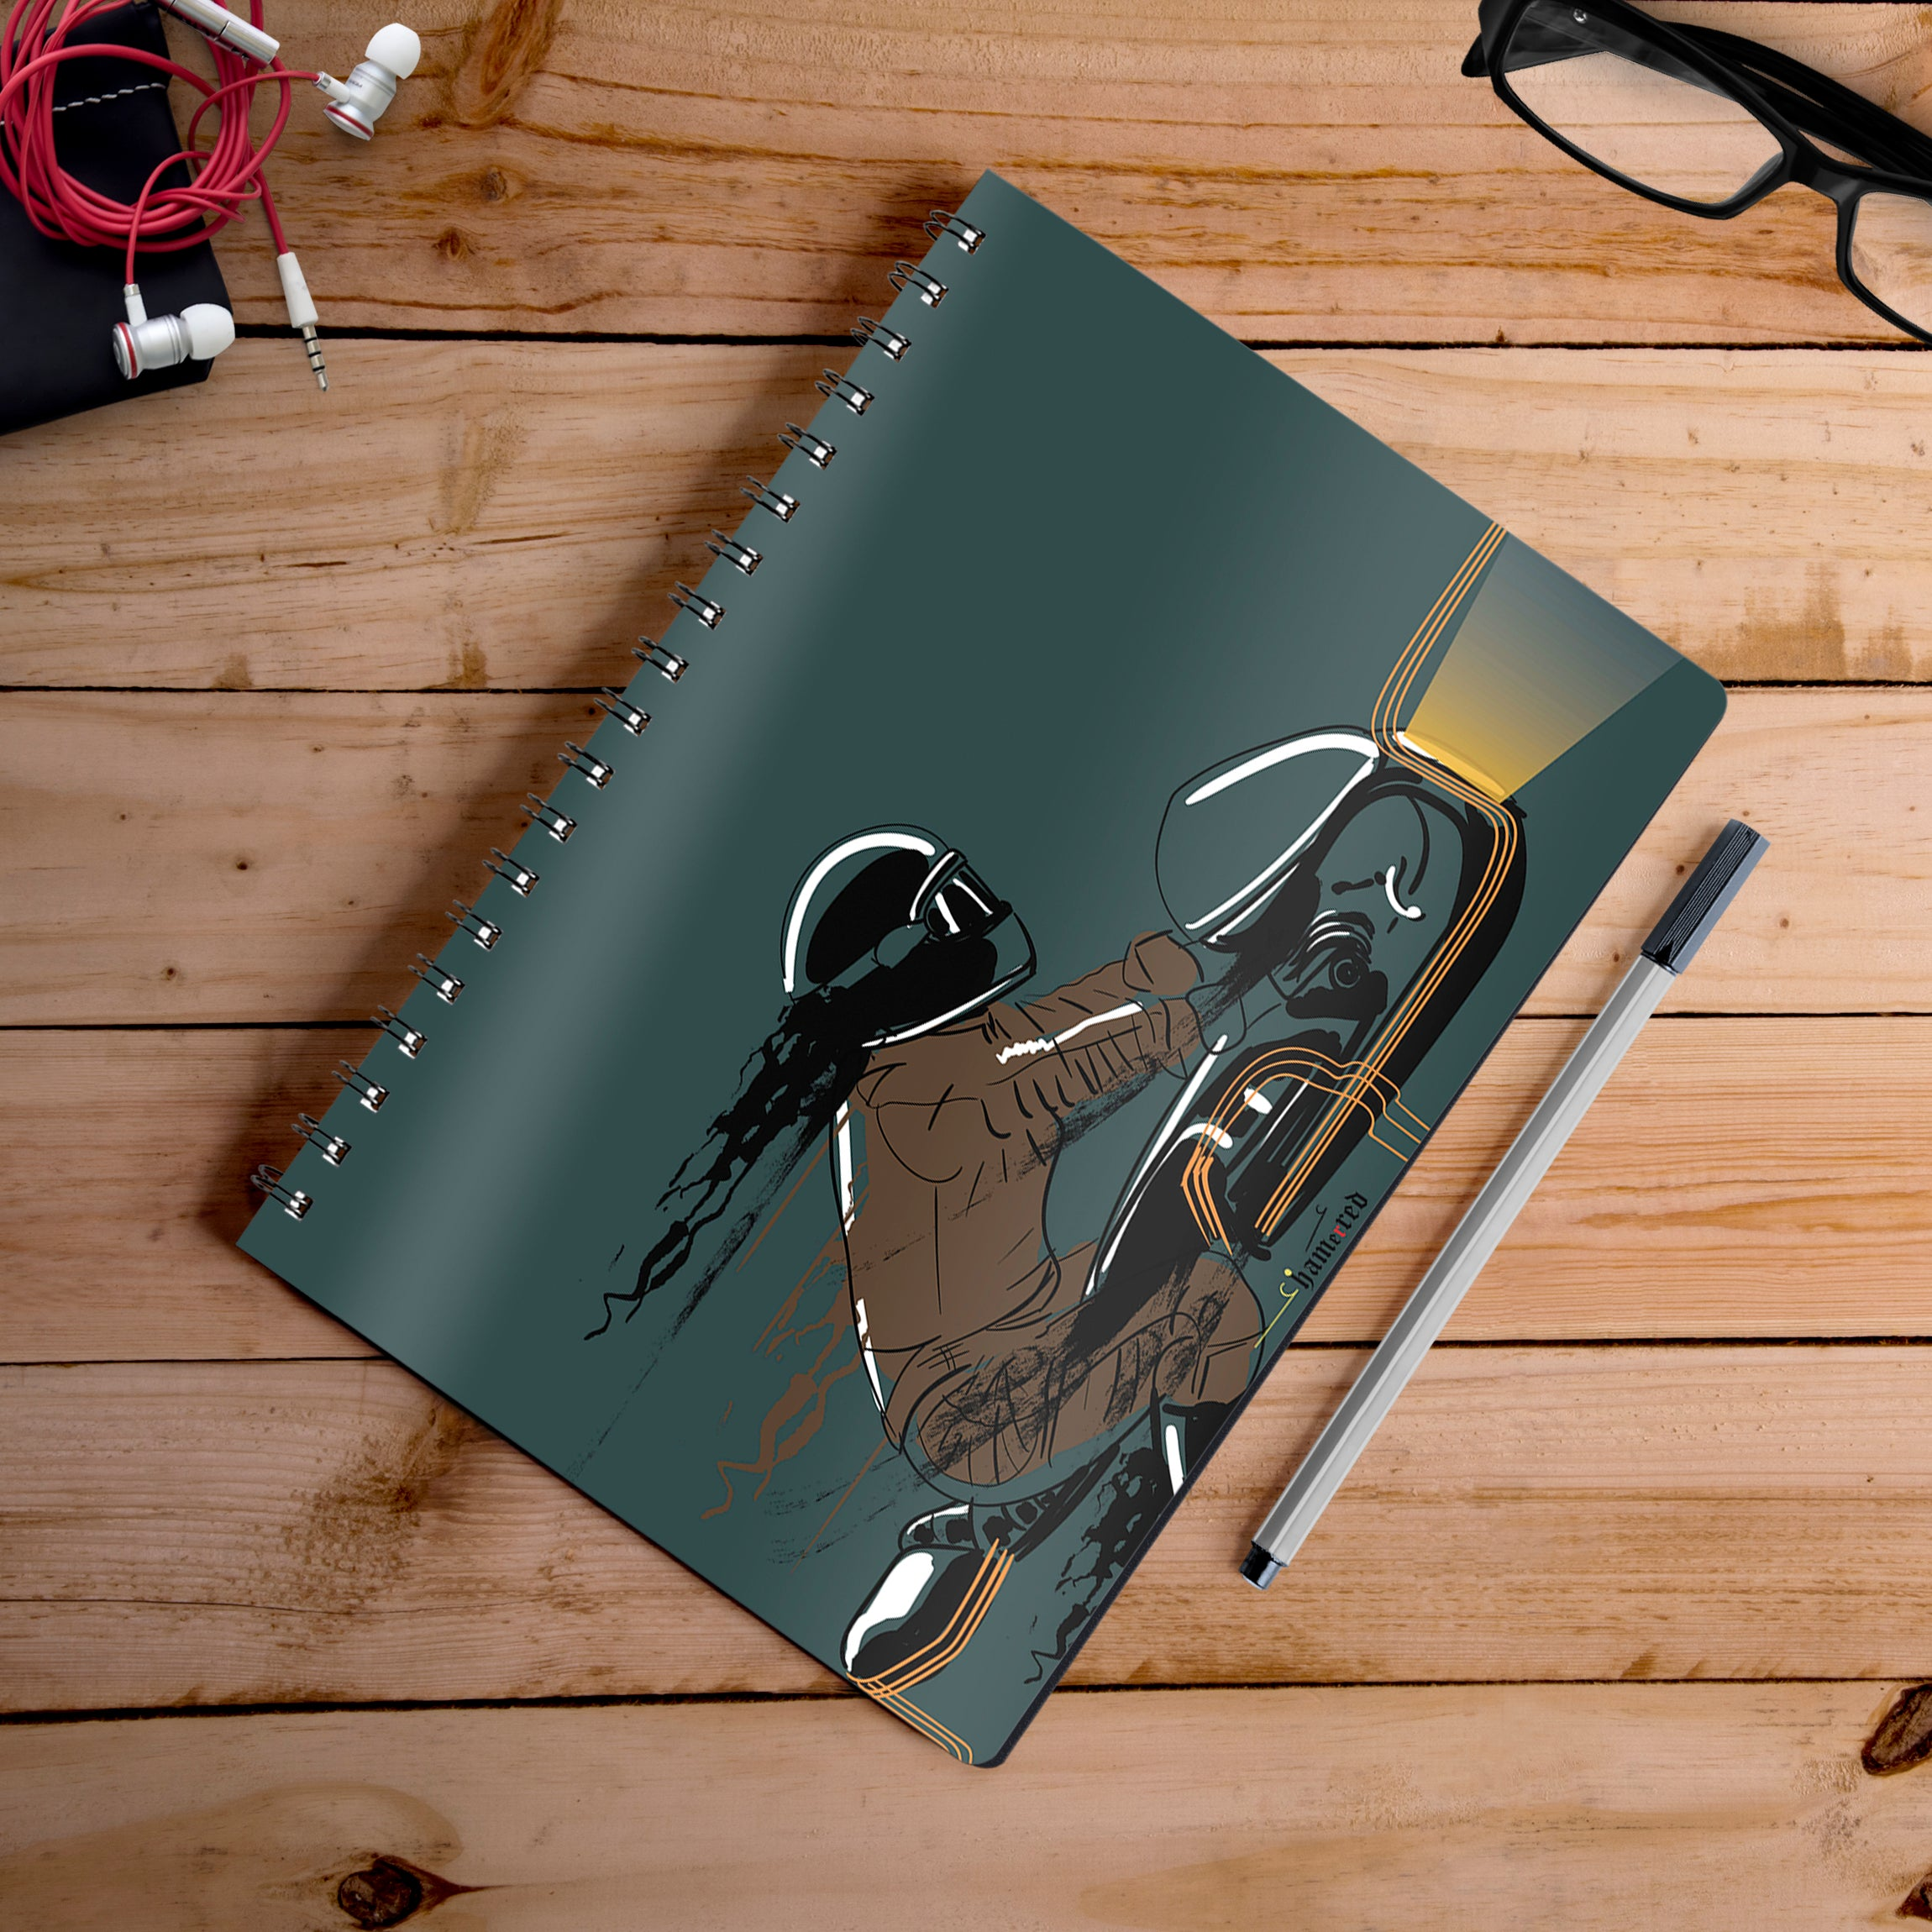 Buy-Midnight-Foolery-Artist-Hamerred49-Notebook | 100kmph